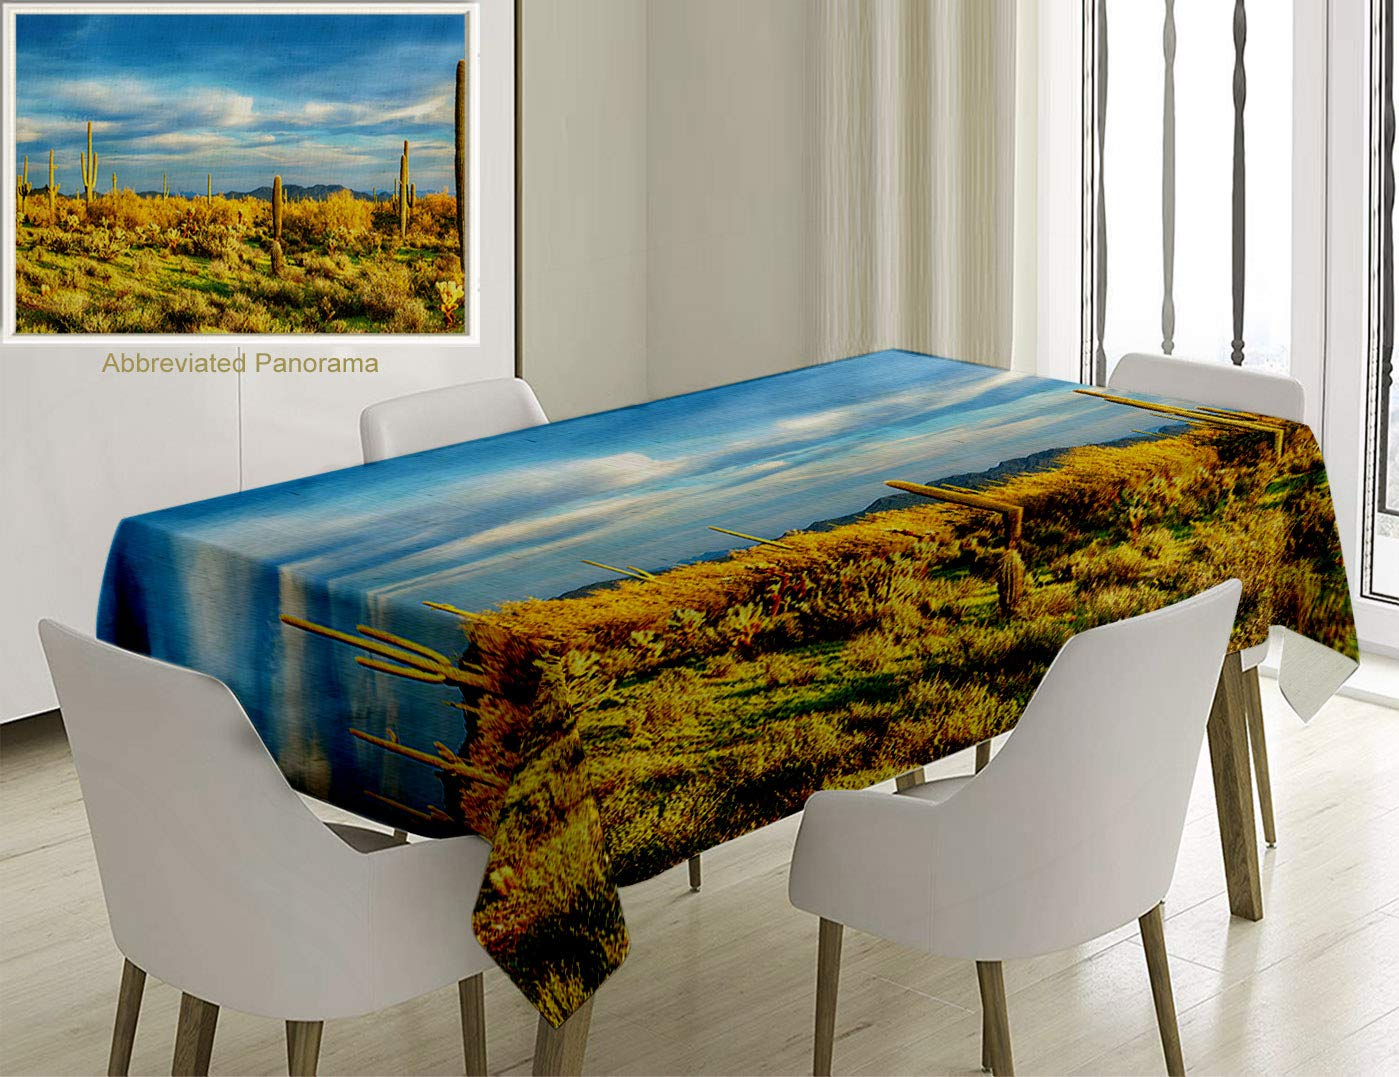 Unique Custom Cotton And Linen Blend Tablecloth Saguaro Cactus Decor Floral Cactus Catching The Last Sunrays Day Lights Long Life Western Plant YellowTablecovers For Rectangle Tables, 60 x 40 Inches